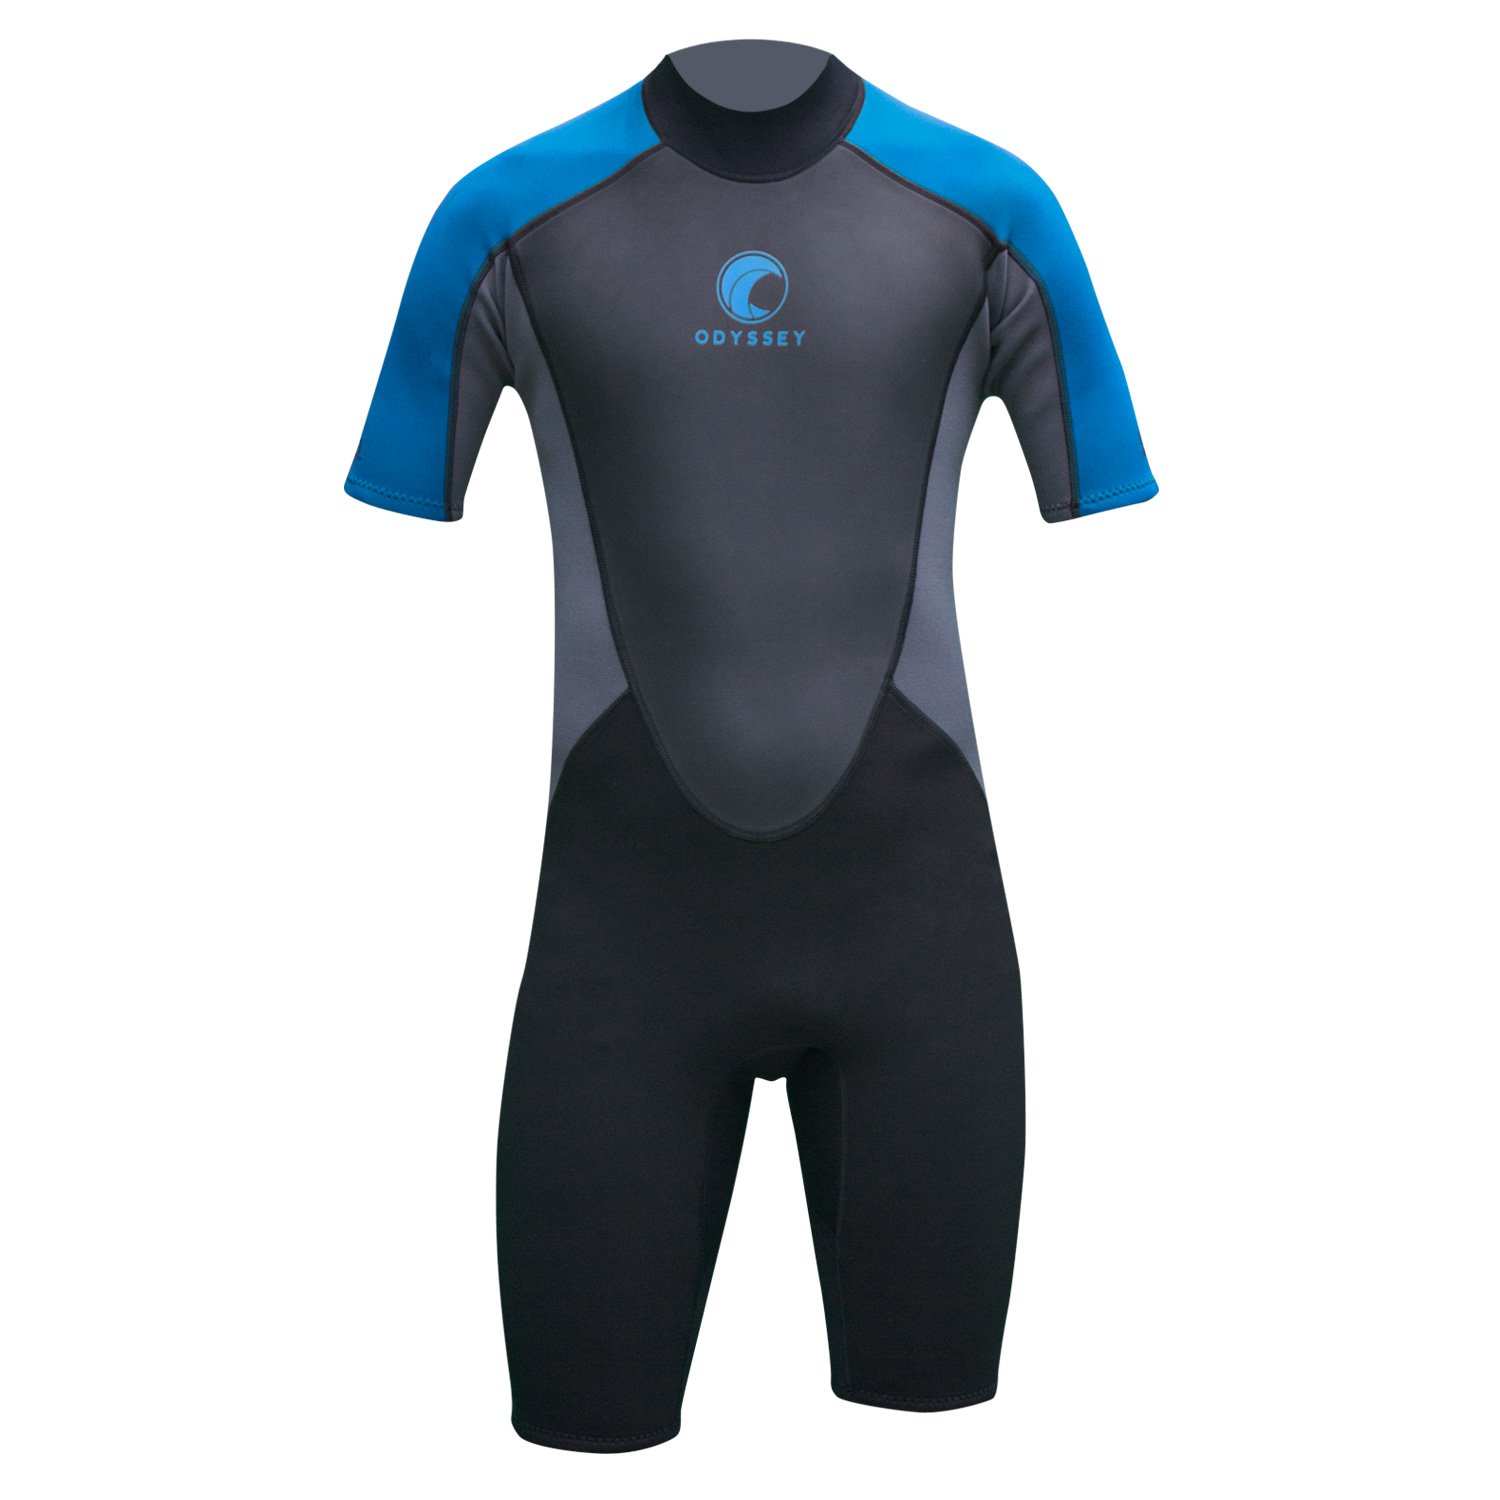 Odyssey-Core-3-2mm-Mens-Shorty-Wetsuit-Surf-Swim-Kayak-Shortie-Wet-Suit-S-XXL thumbnail 10